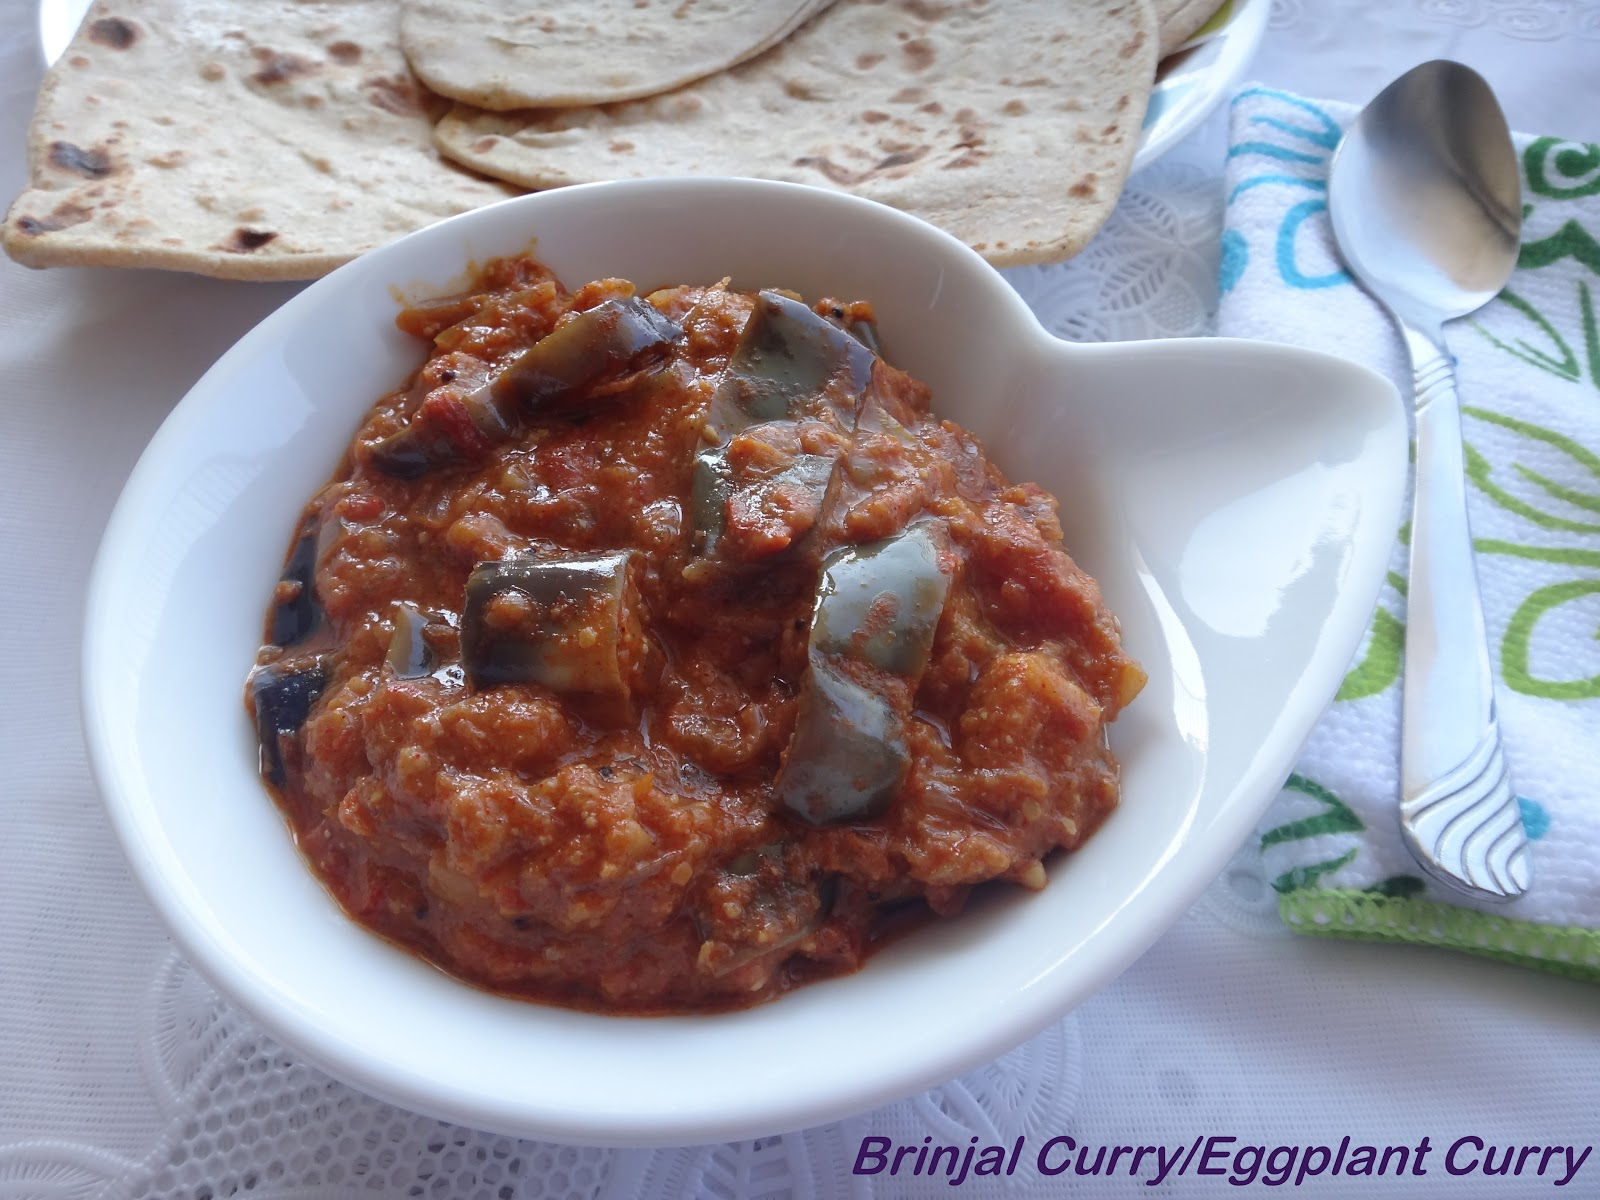 Prabha's Cooking: Brinjal Curry/Eggplant Curry